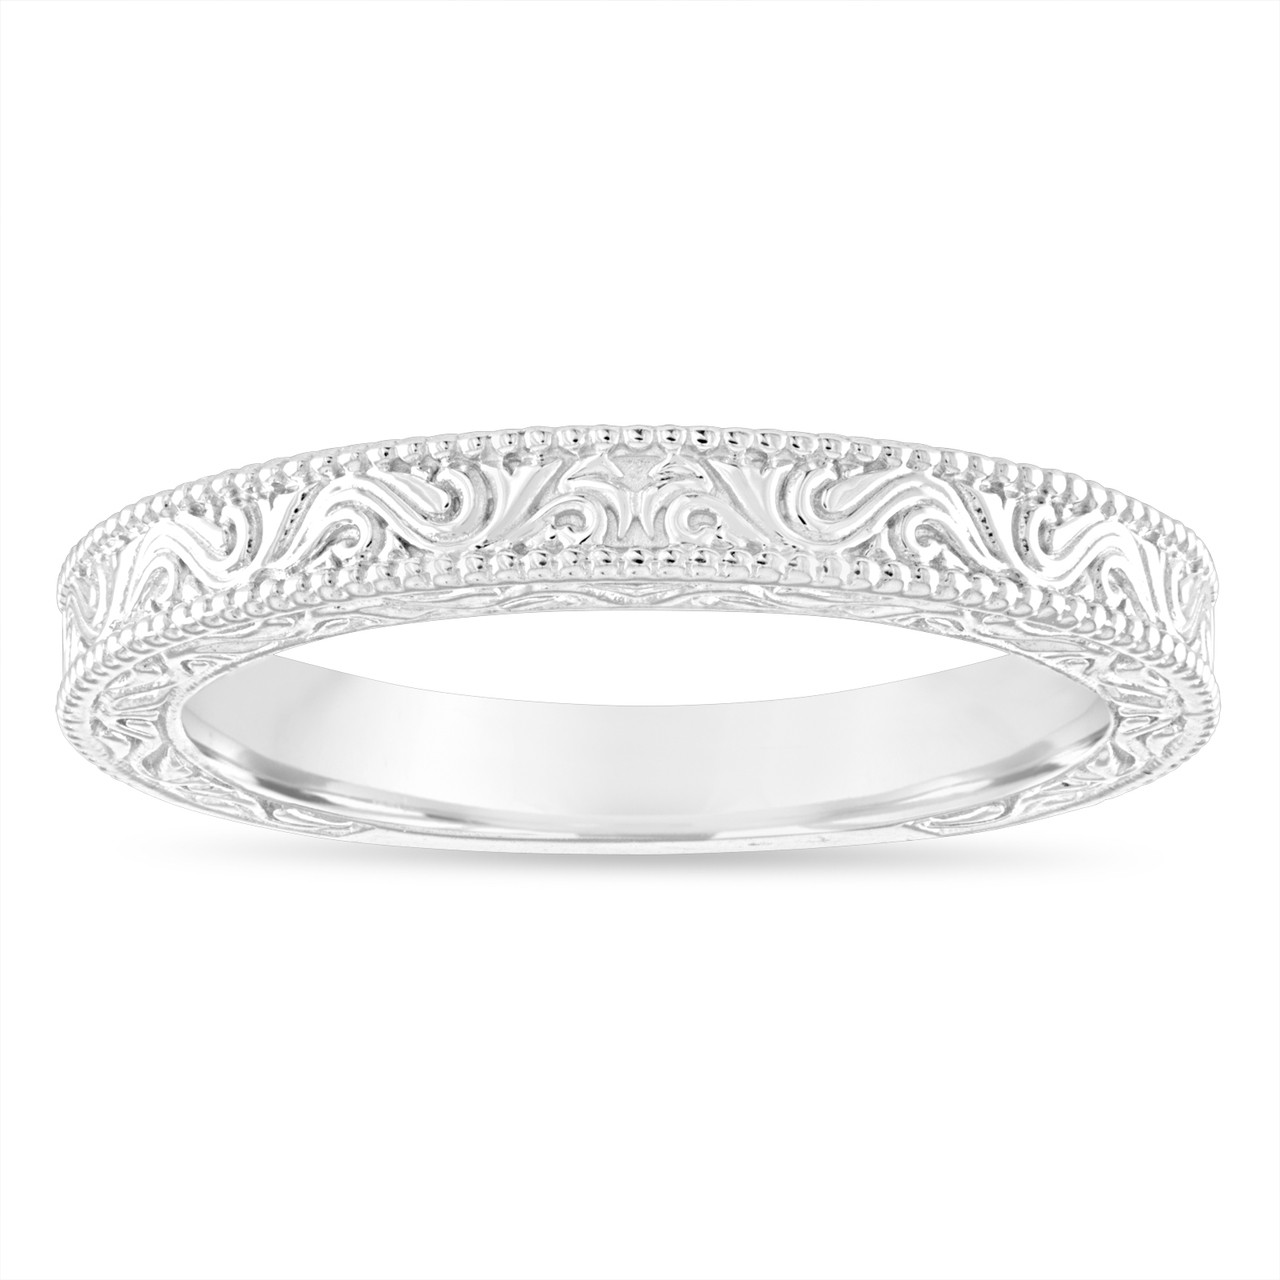 Handcrafted In The Usa: Antique Filigree Wedding Rings At Reisefeber.org